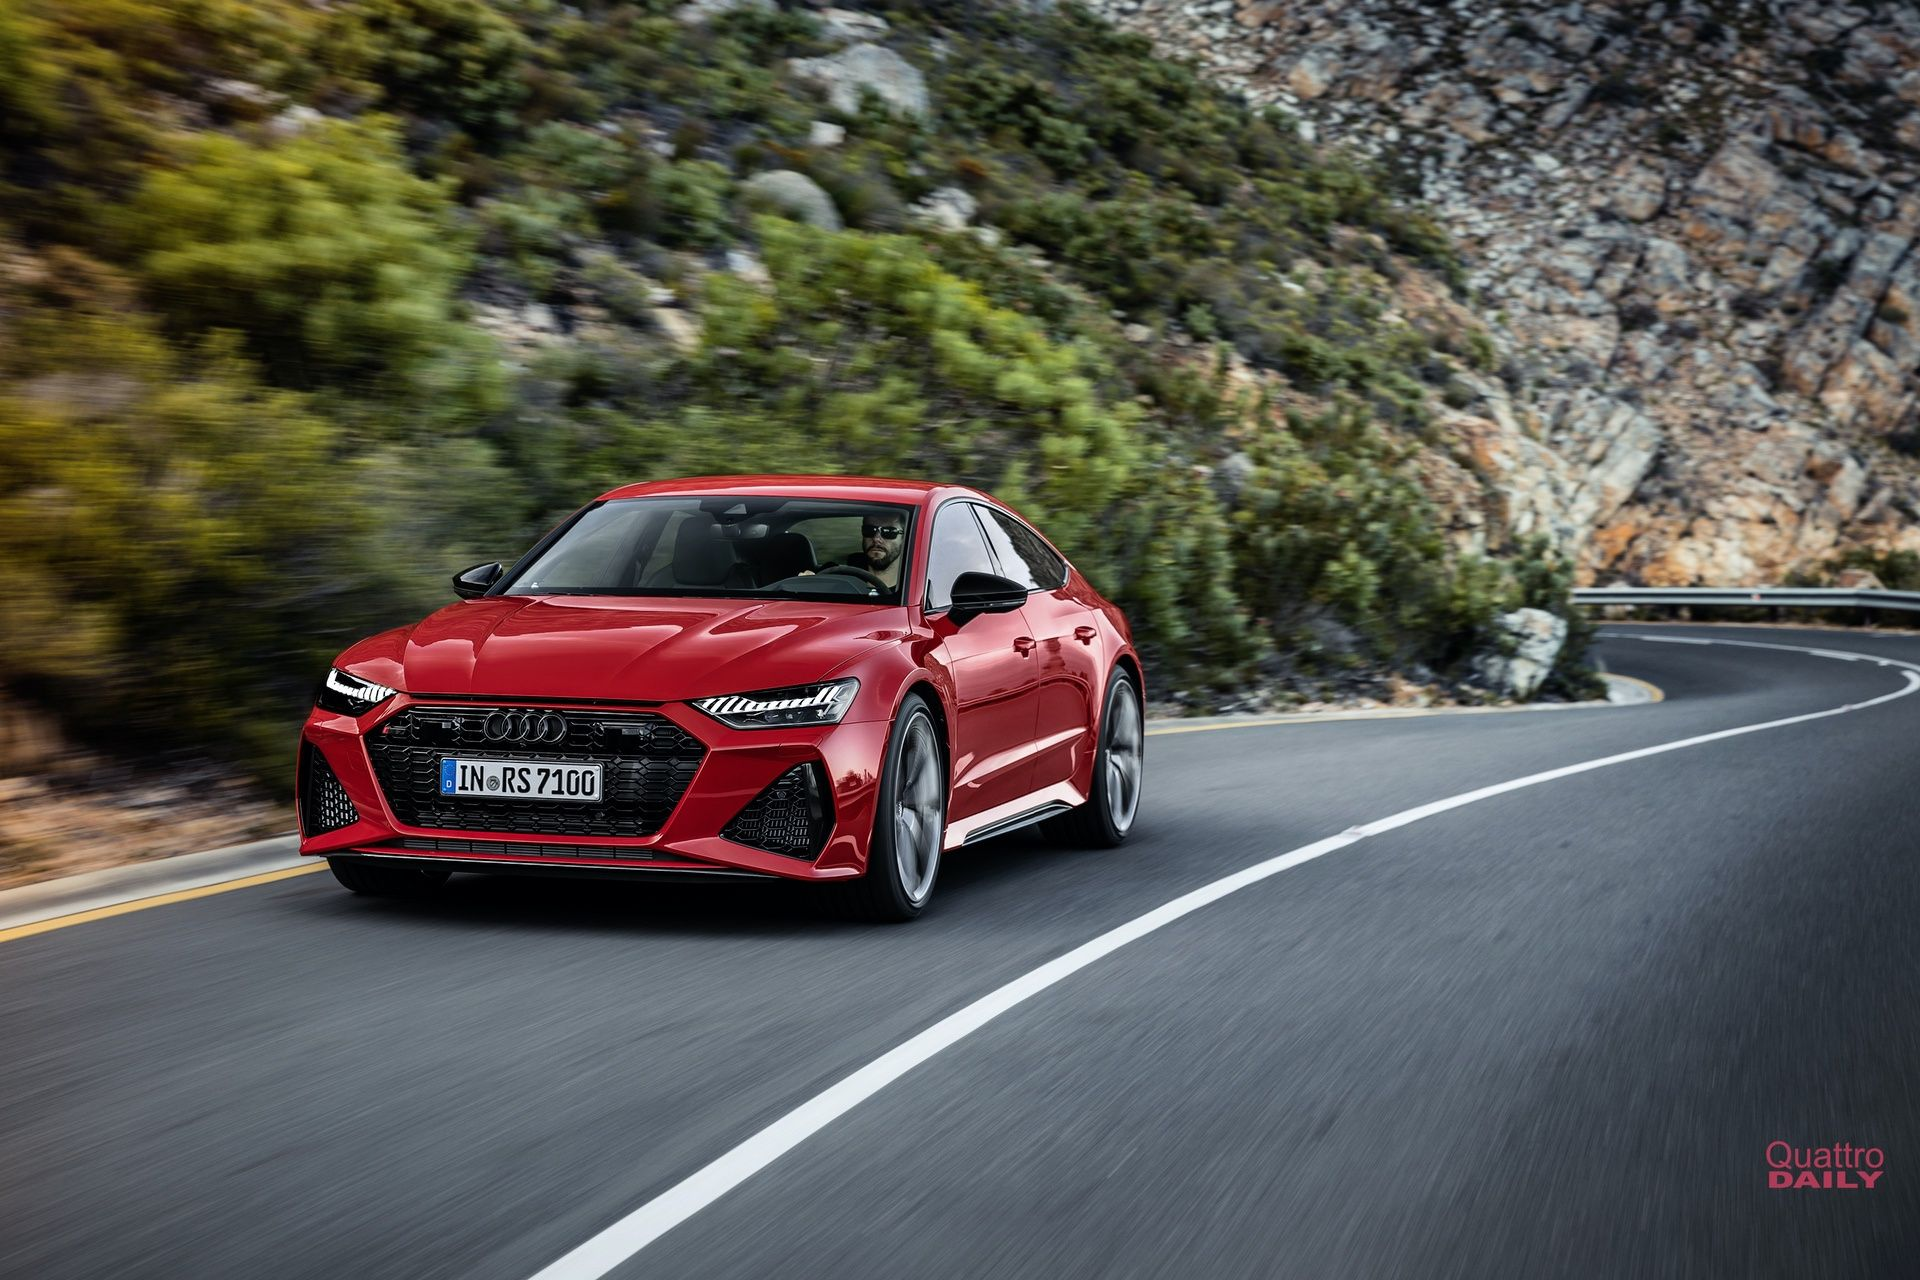 Video Audi Rs7 Sportback Review By Carwow Faster Than We Thought Audi Rs7 Sportback Rs7 Sportback Audi Rs7